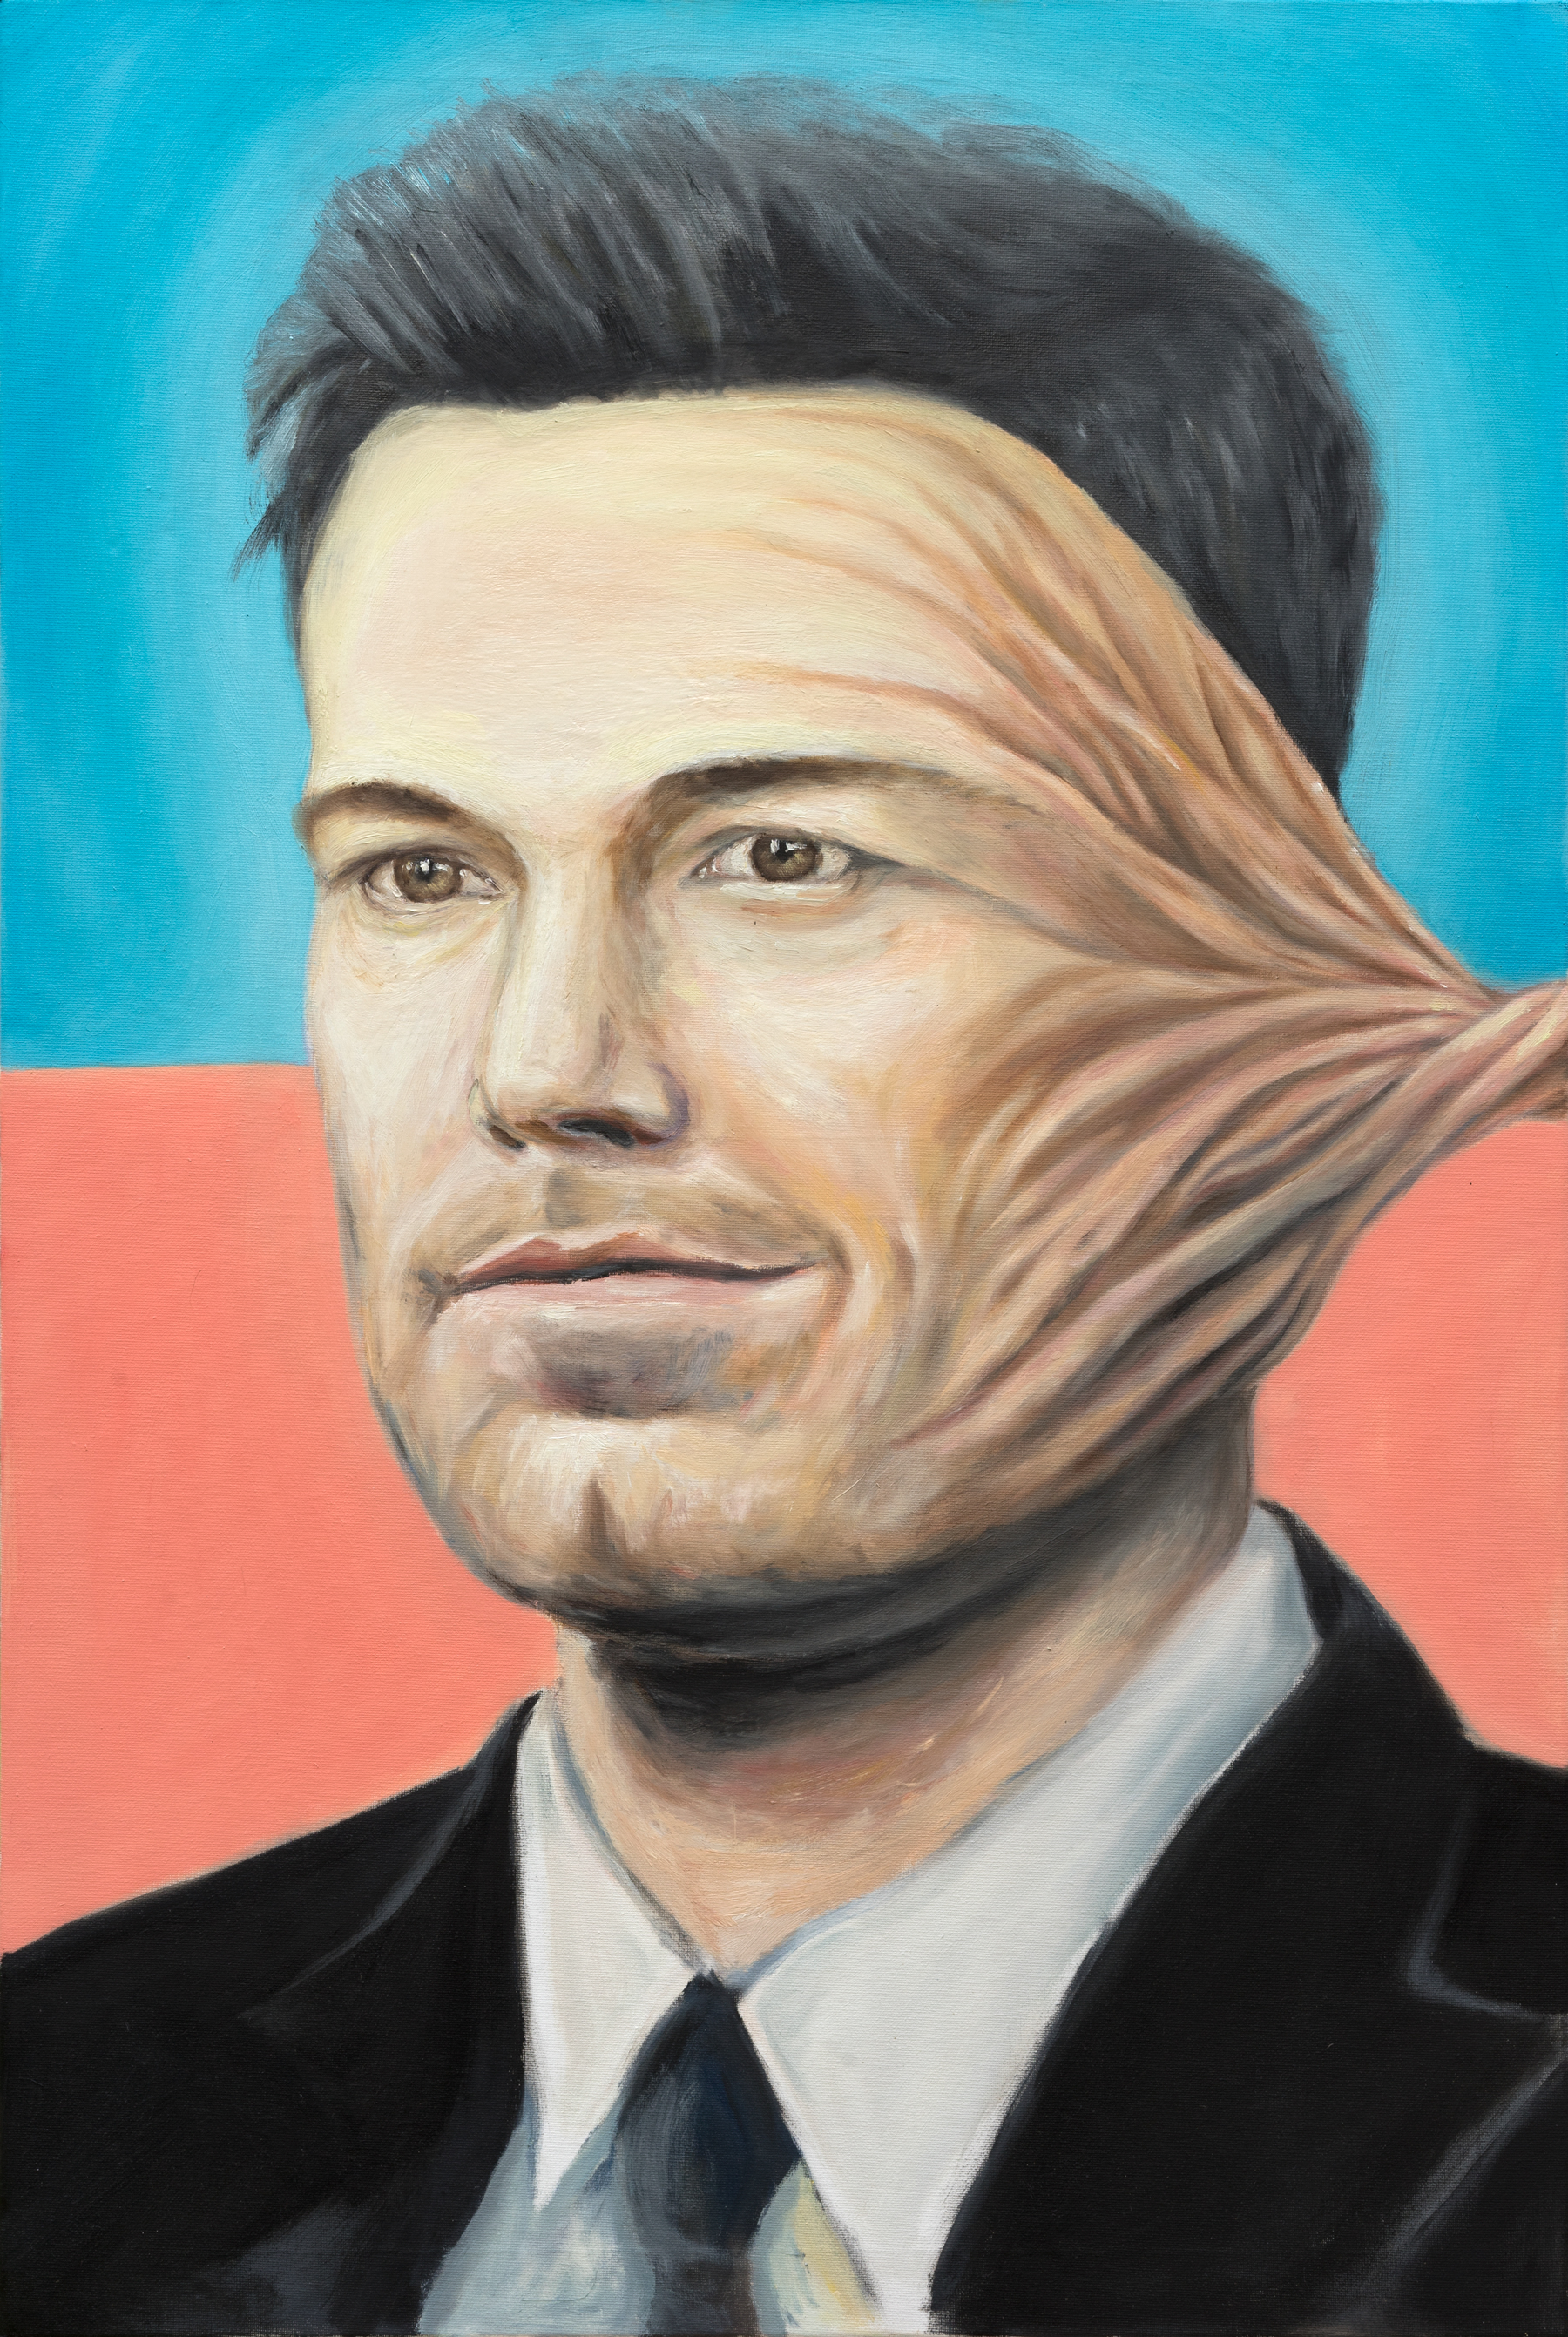 Angus_Watkins_Affleck_2018_Oil on Canvas_60 x 89.5.jpg